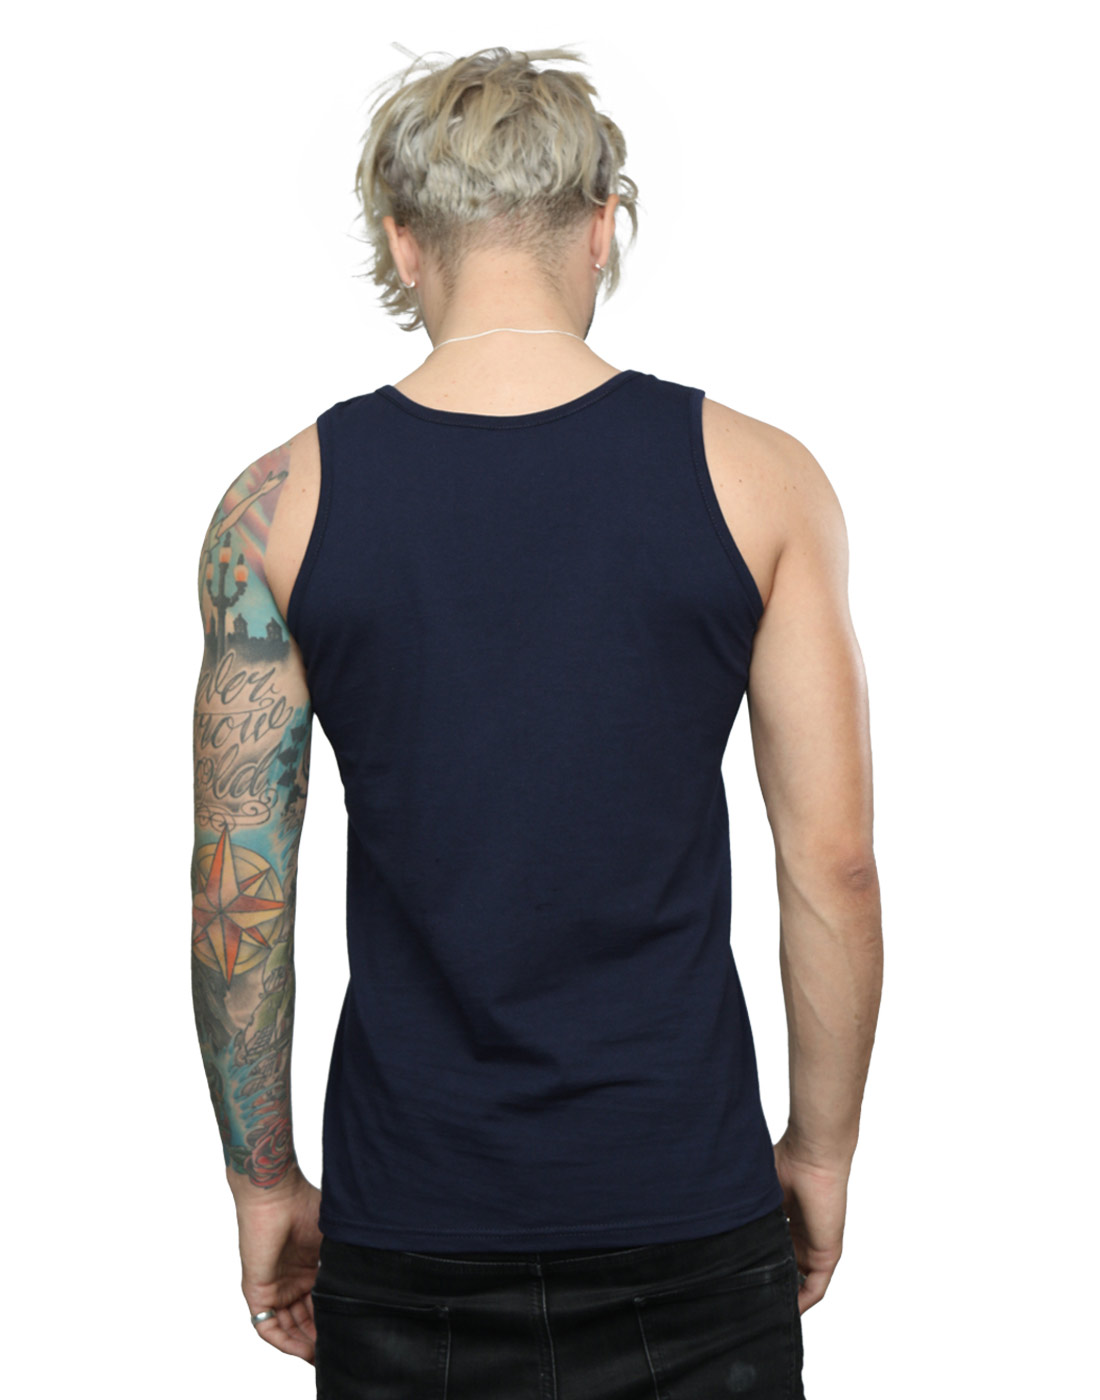 Looney-Tunes-Homme-Daffy-Duck-Big-Face-Tank-Top